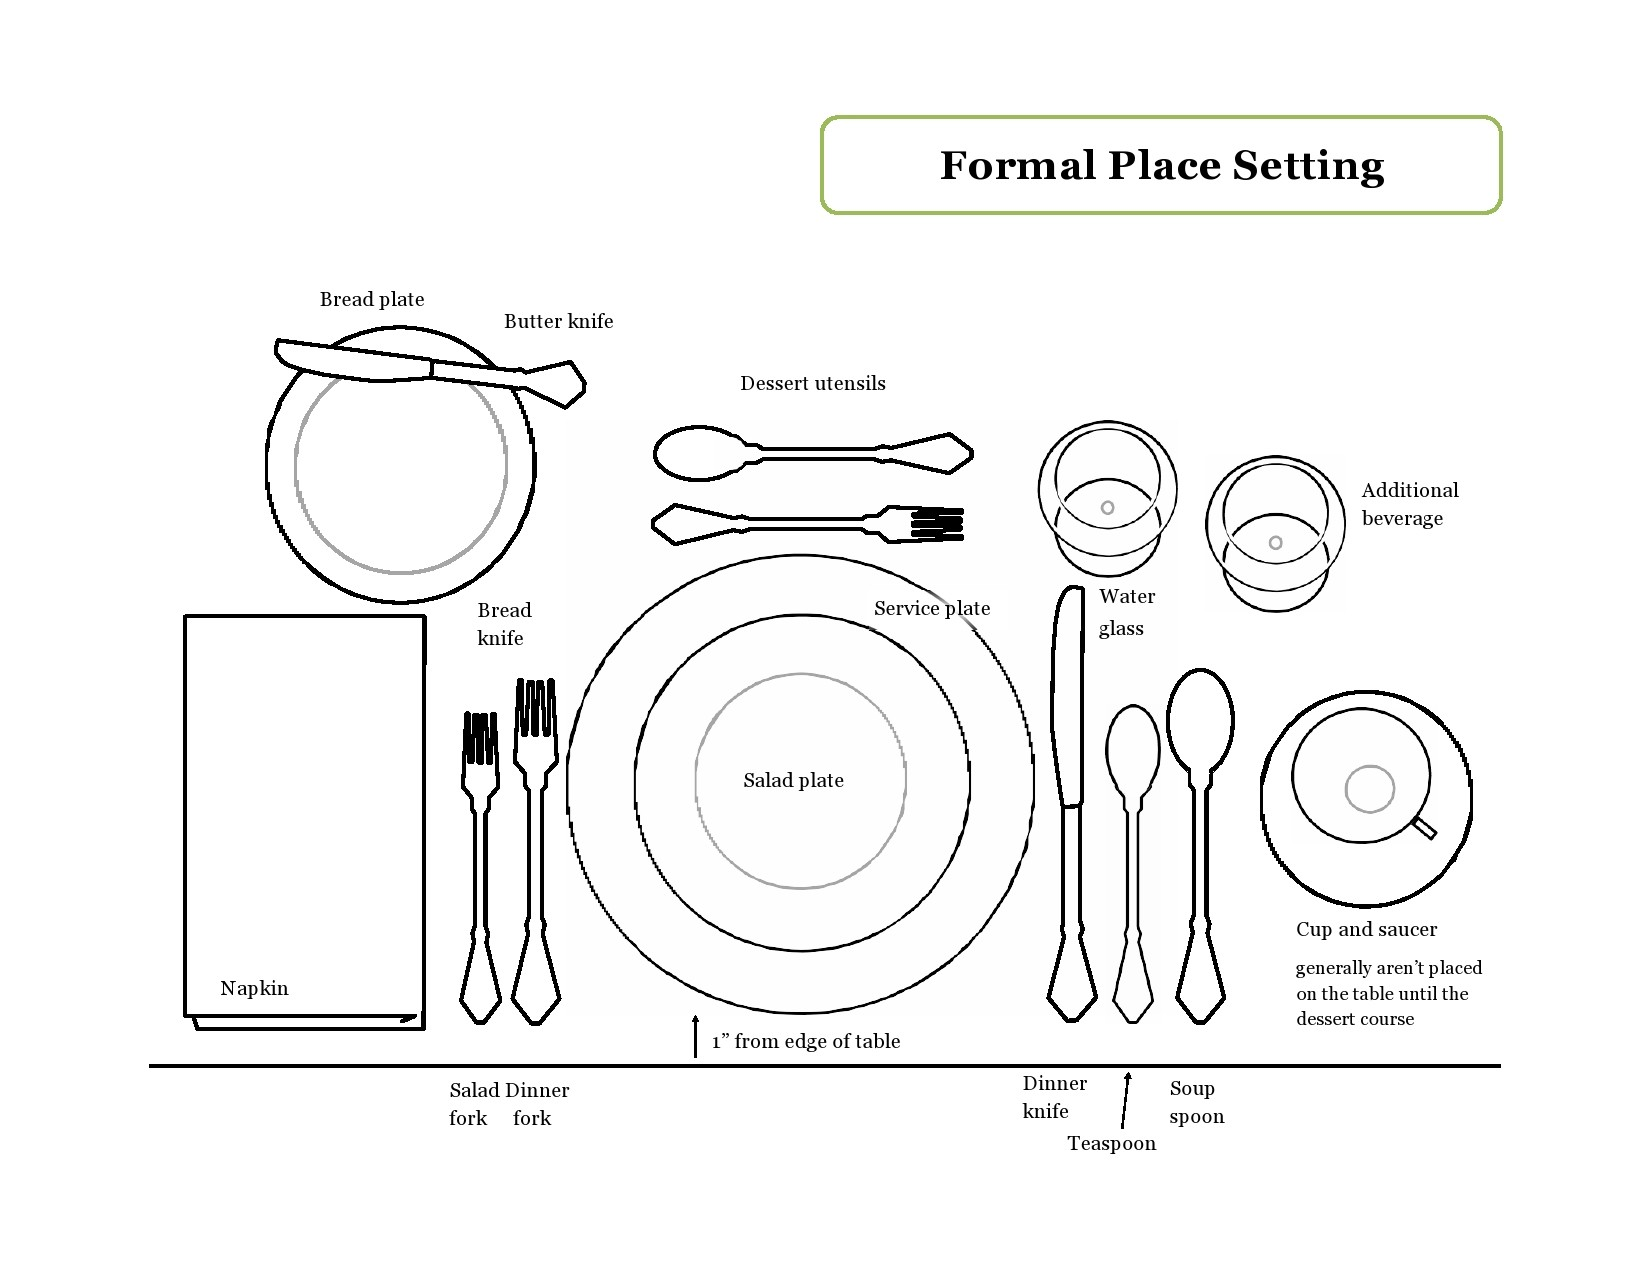 Table Setting Diagram Printable Seniorsclub It Cable Mouth Cable Mouth Hazzart It